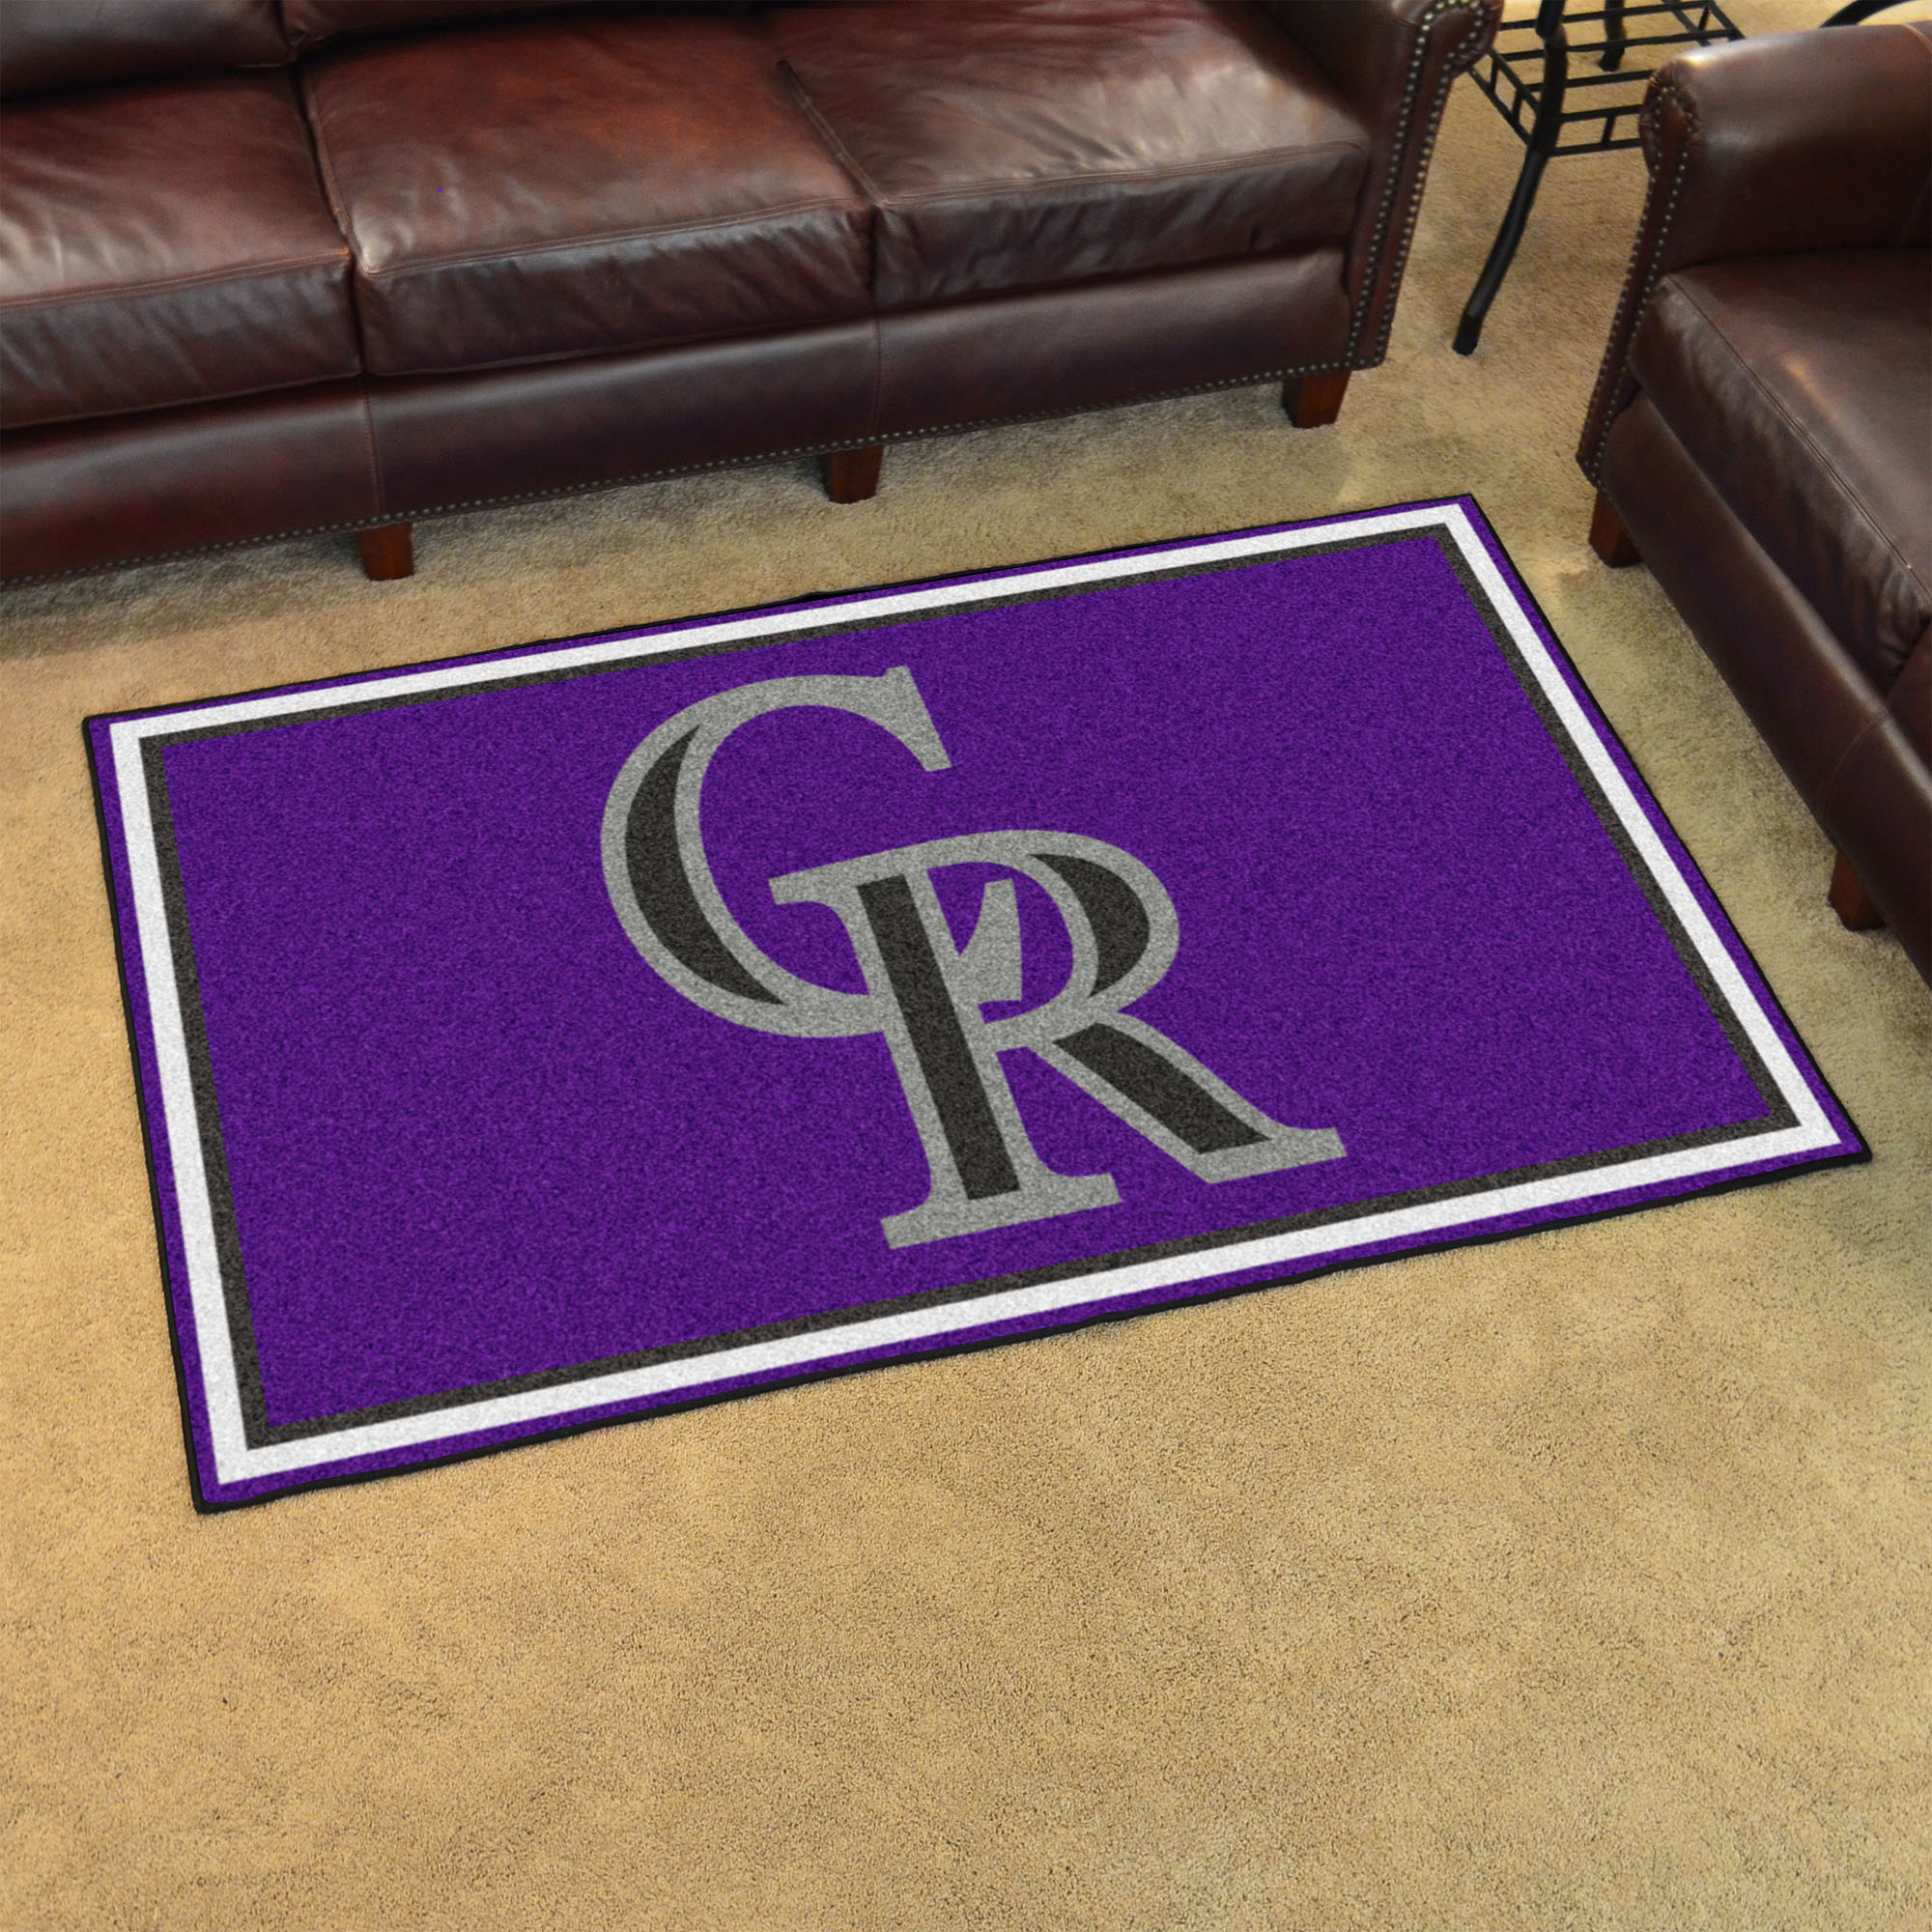 Colorado Rockies 4x6 Area Rug